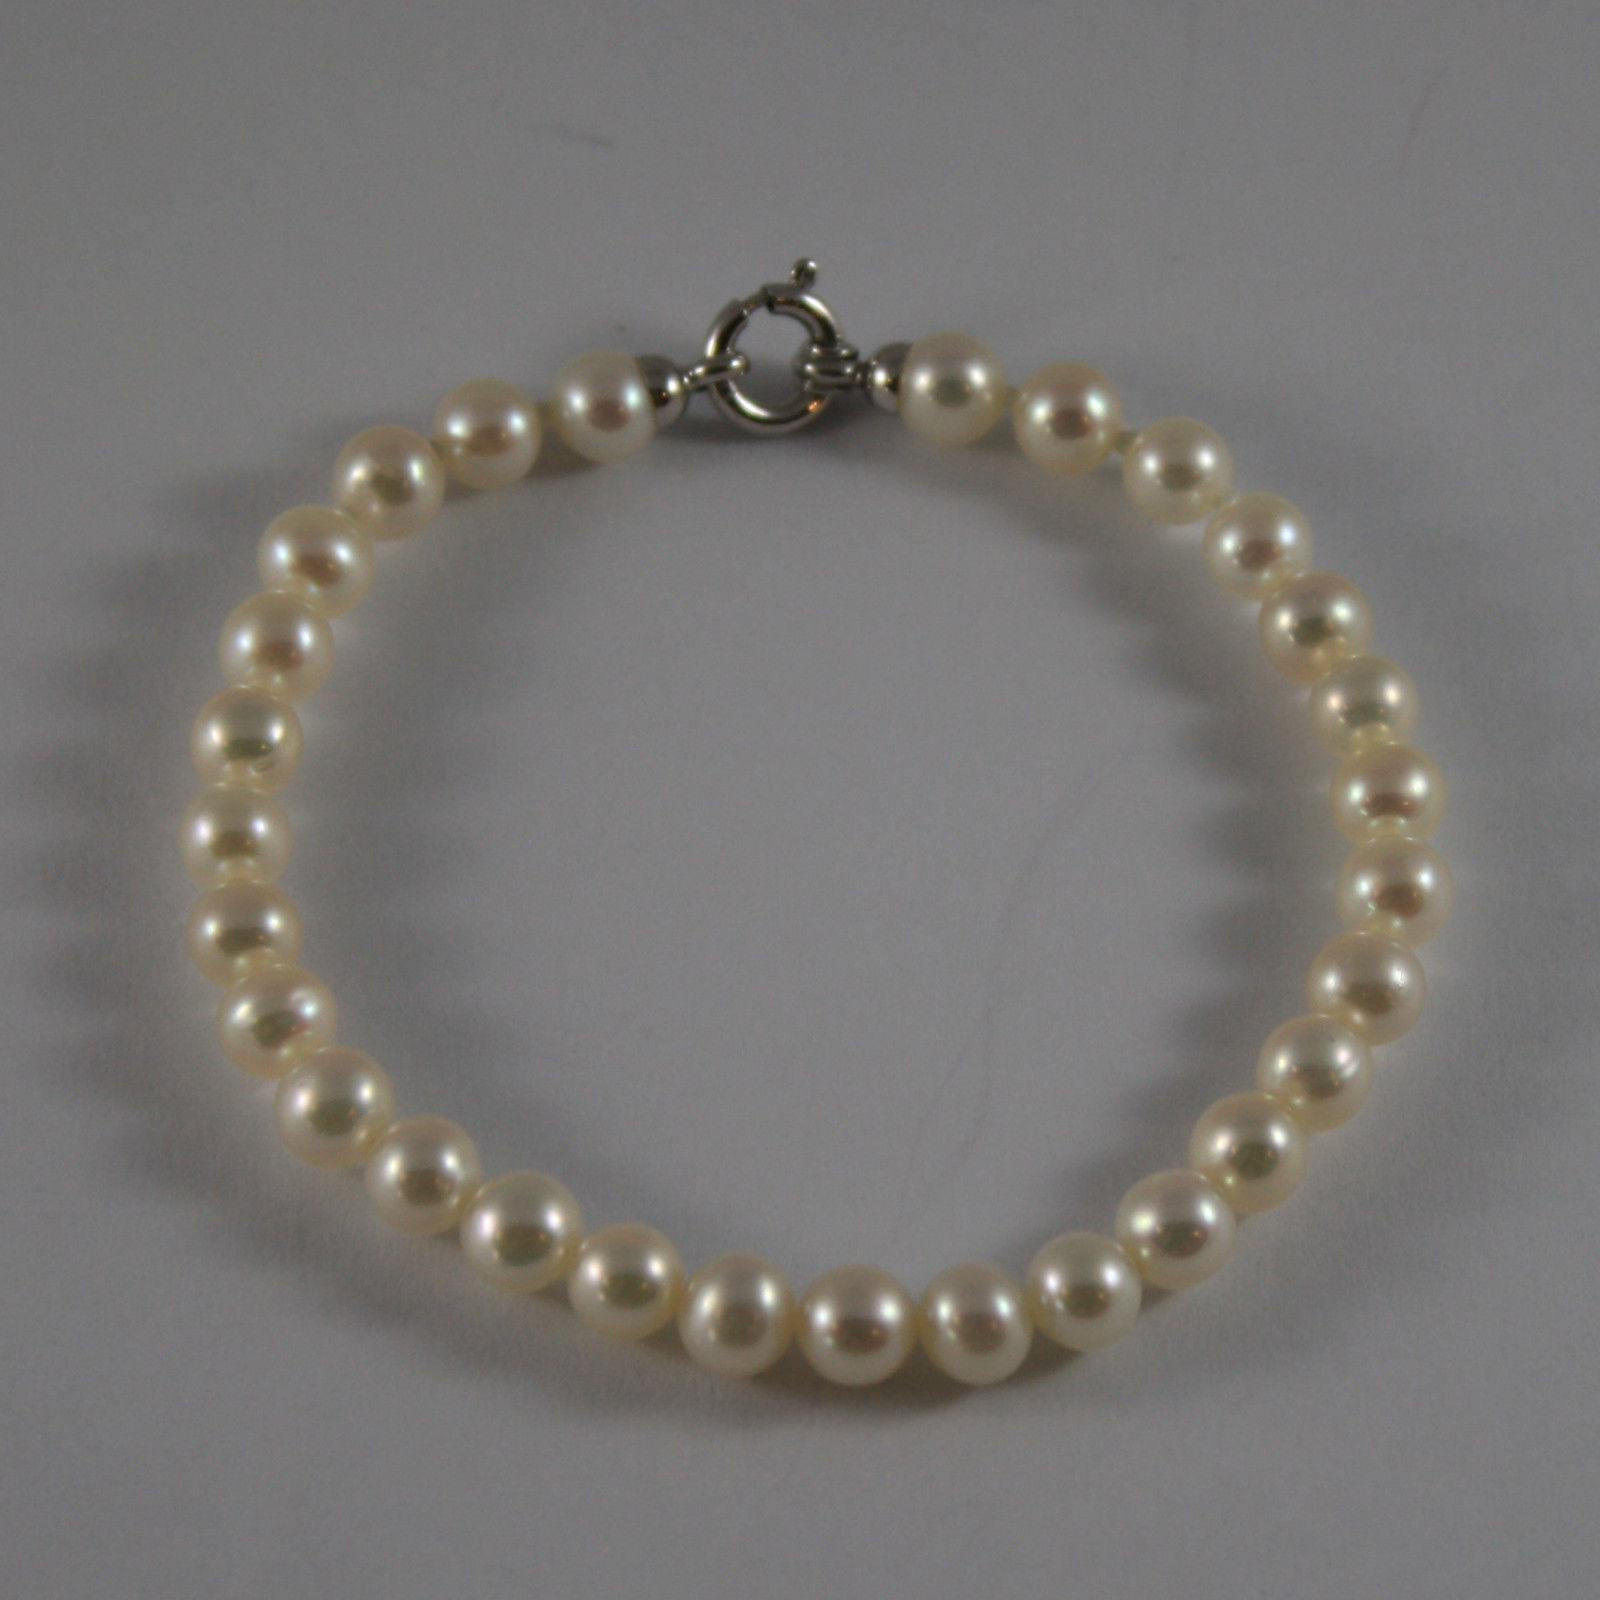 SOLID 18K WHITE GOLD BRACELET WITH FRESHWATER WHITE PEARL MADE IN ITALY 7,28 IN